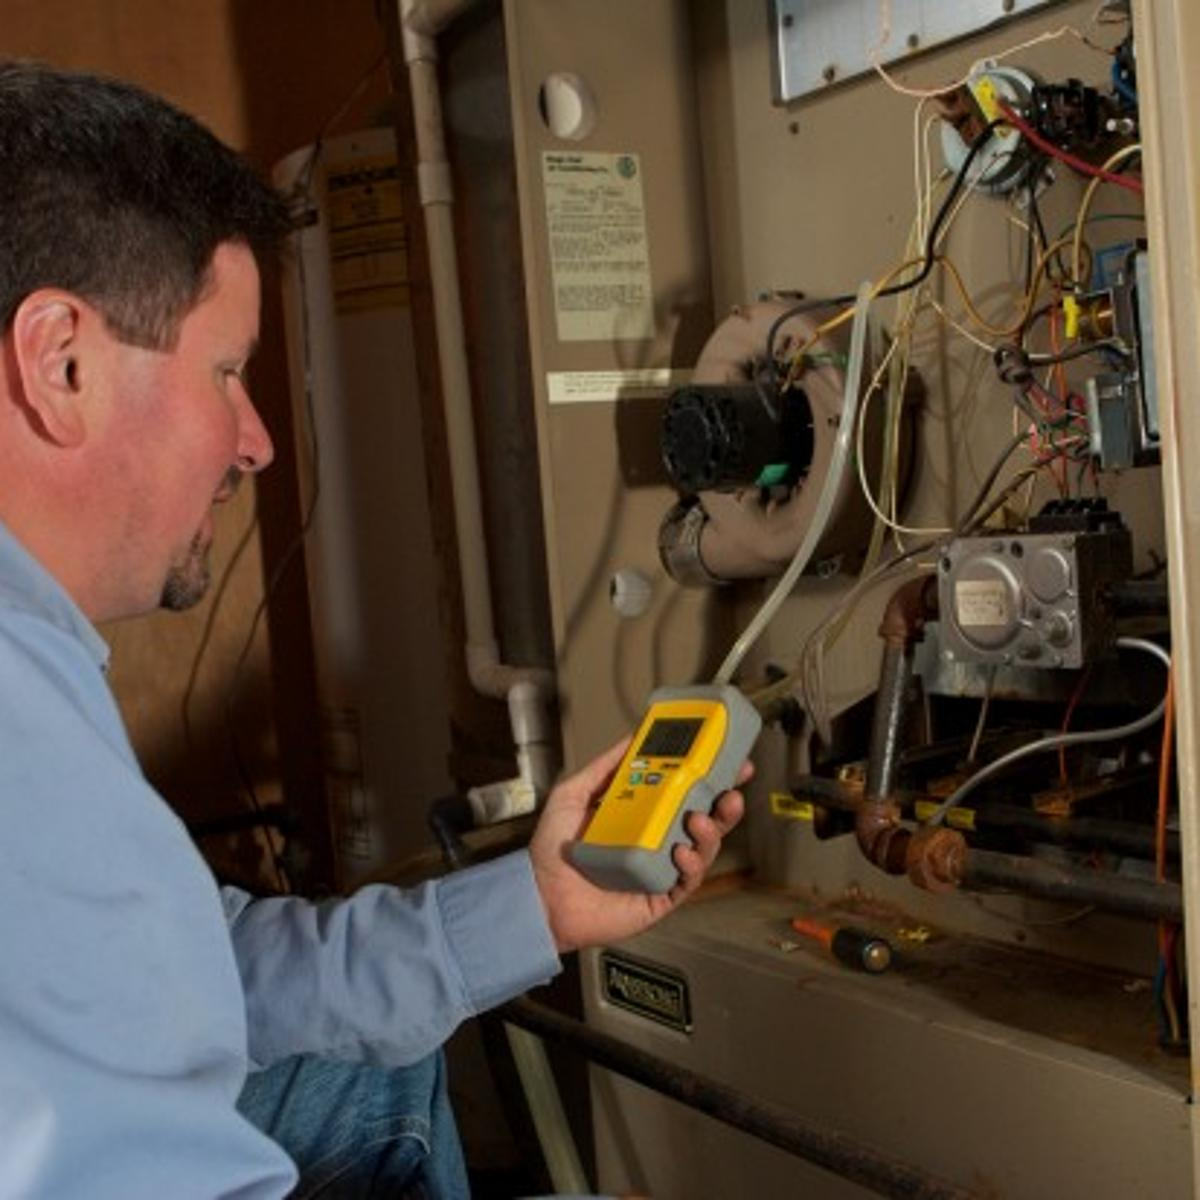 NIPSCO E S P  program offers fast, reliable home repairs of